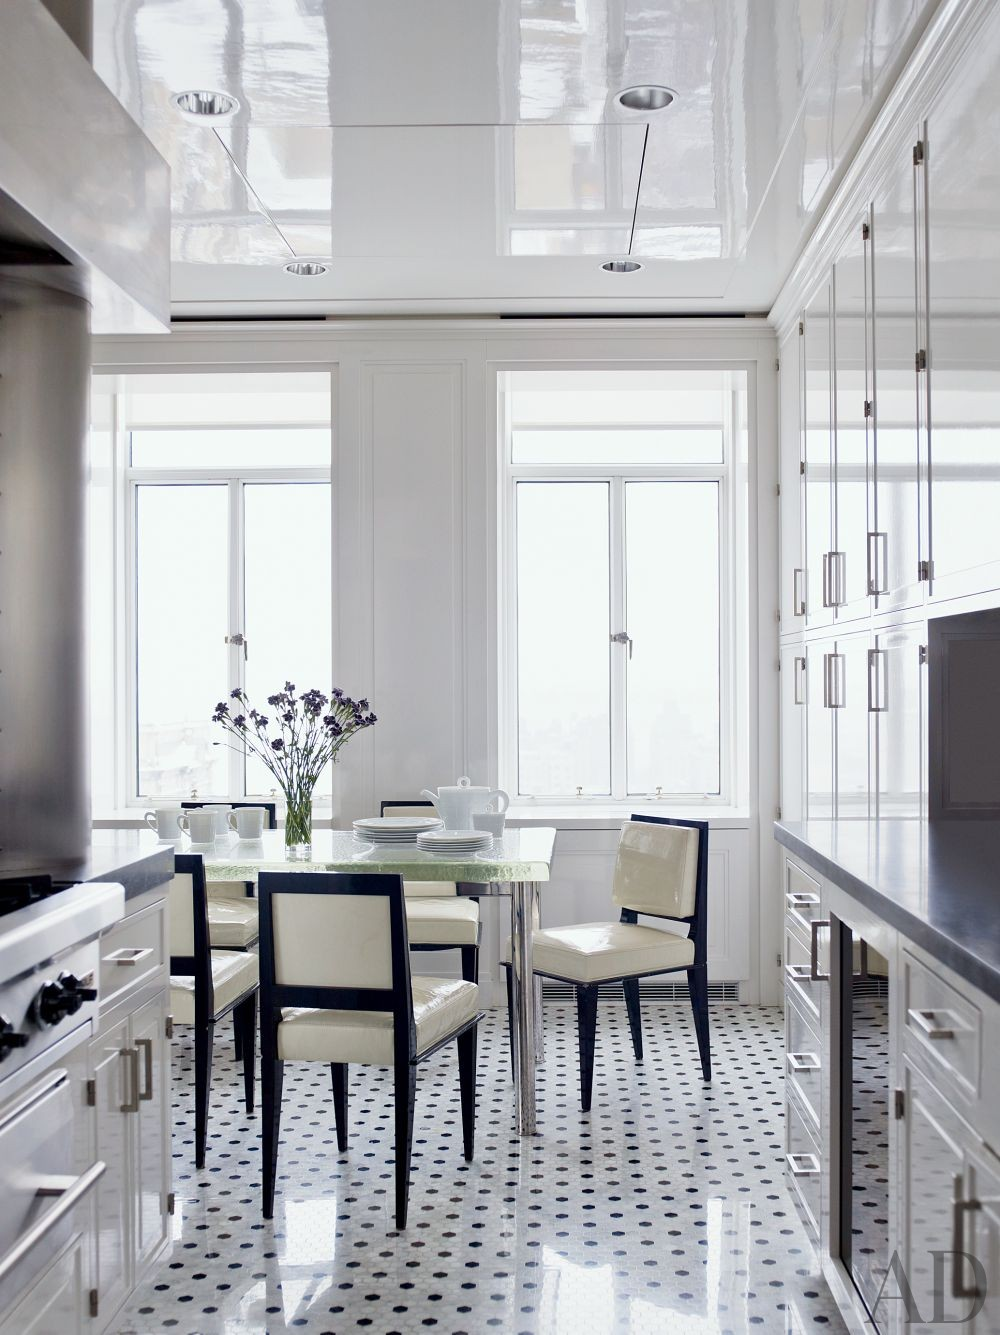 Contemporary Kitchen by Pamplemousse Design and Ferguson & Shamamian Architects in New York City